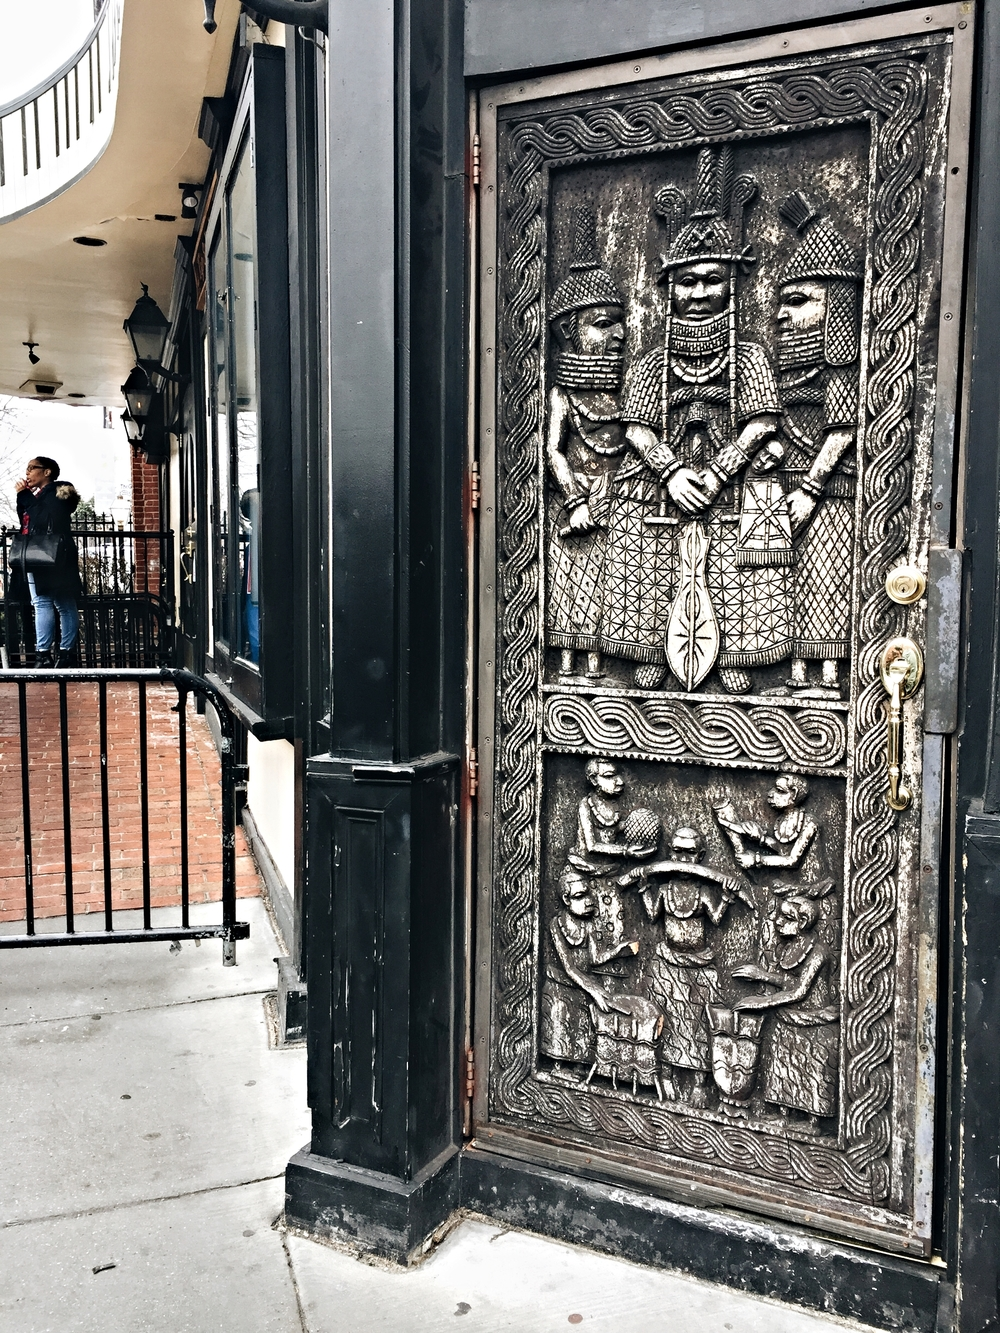 Even the doors of the Bohemian Cavern were beautiful.